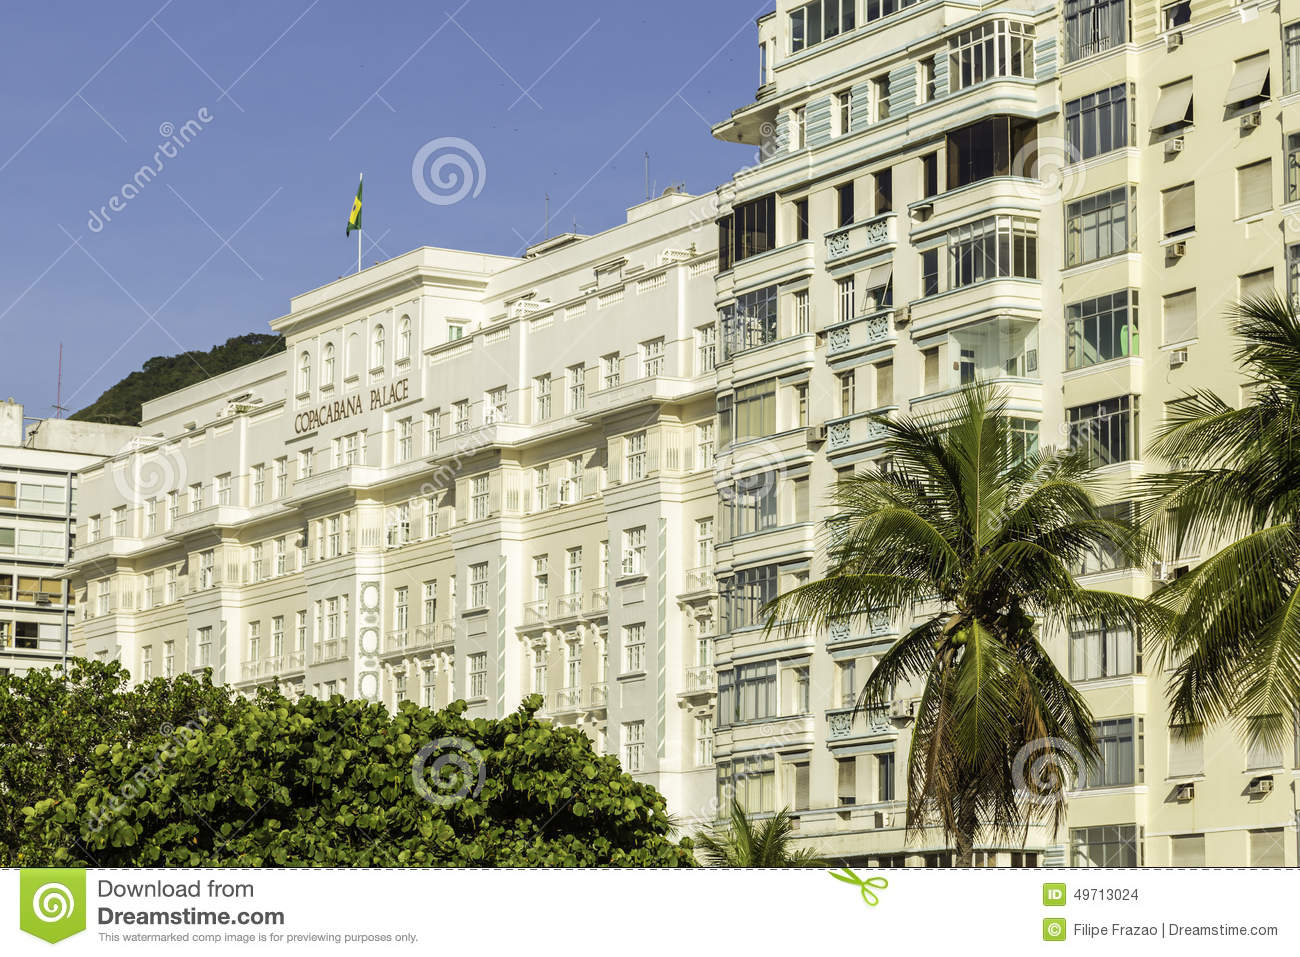 Facade of the Copacabana Palace Hotel, whose design was based on the style of hotels in the French Riviera, built in the 1920s